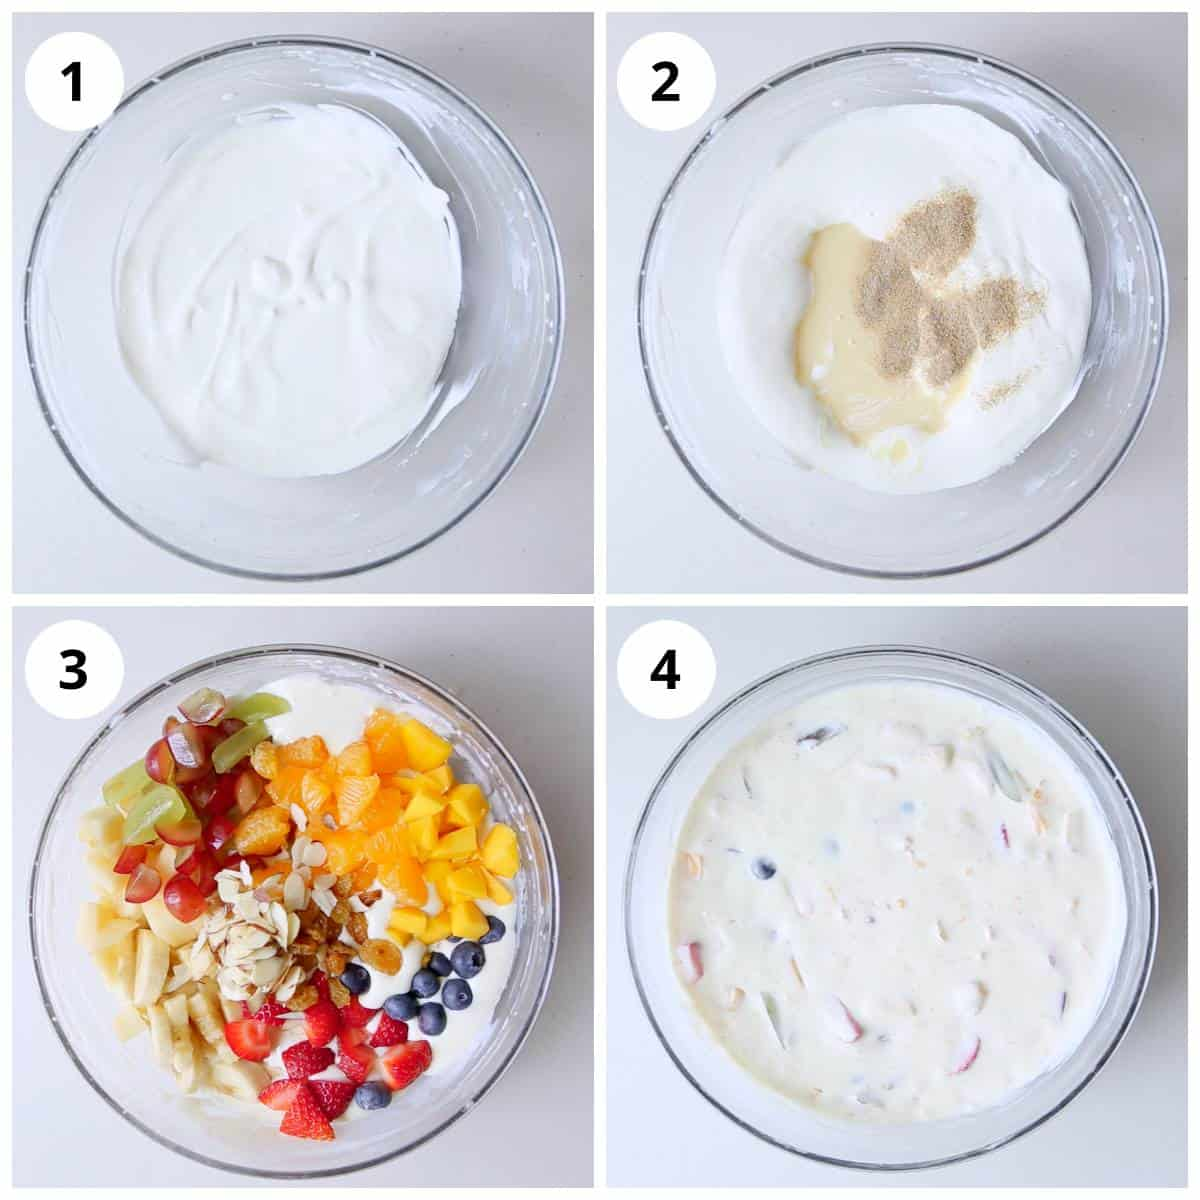 Steps showing how to make Fruit Salad with Condensed Milk and cream